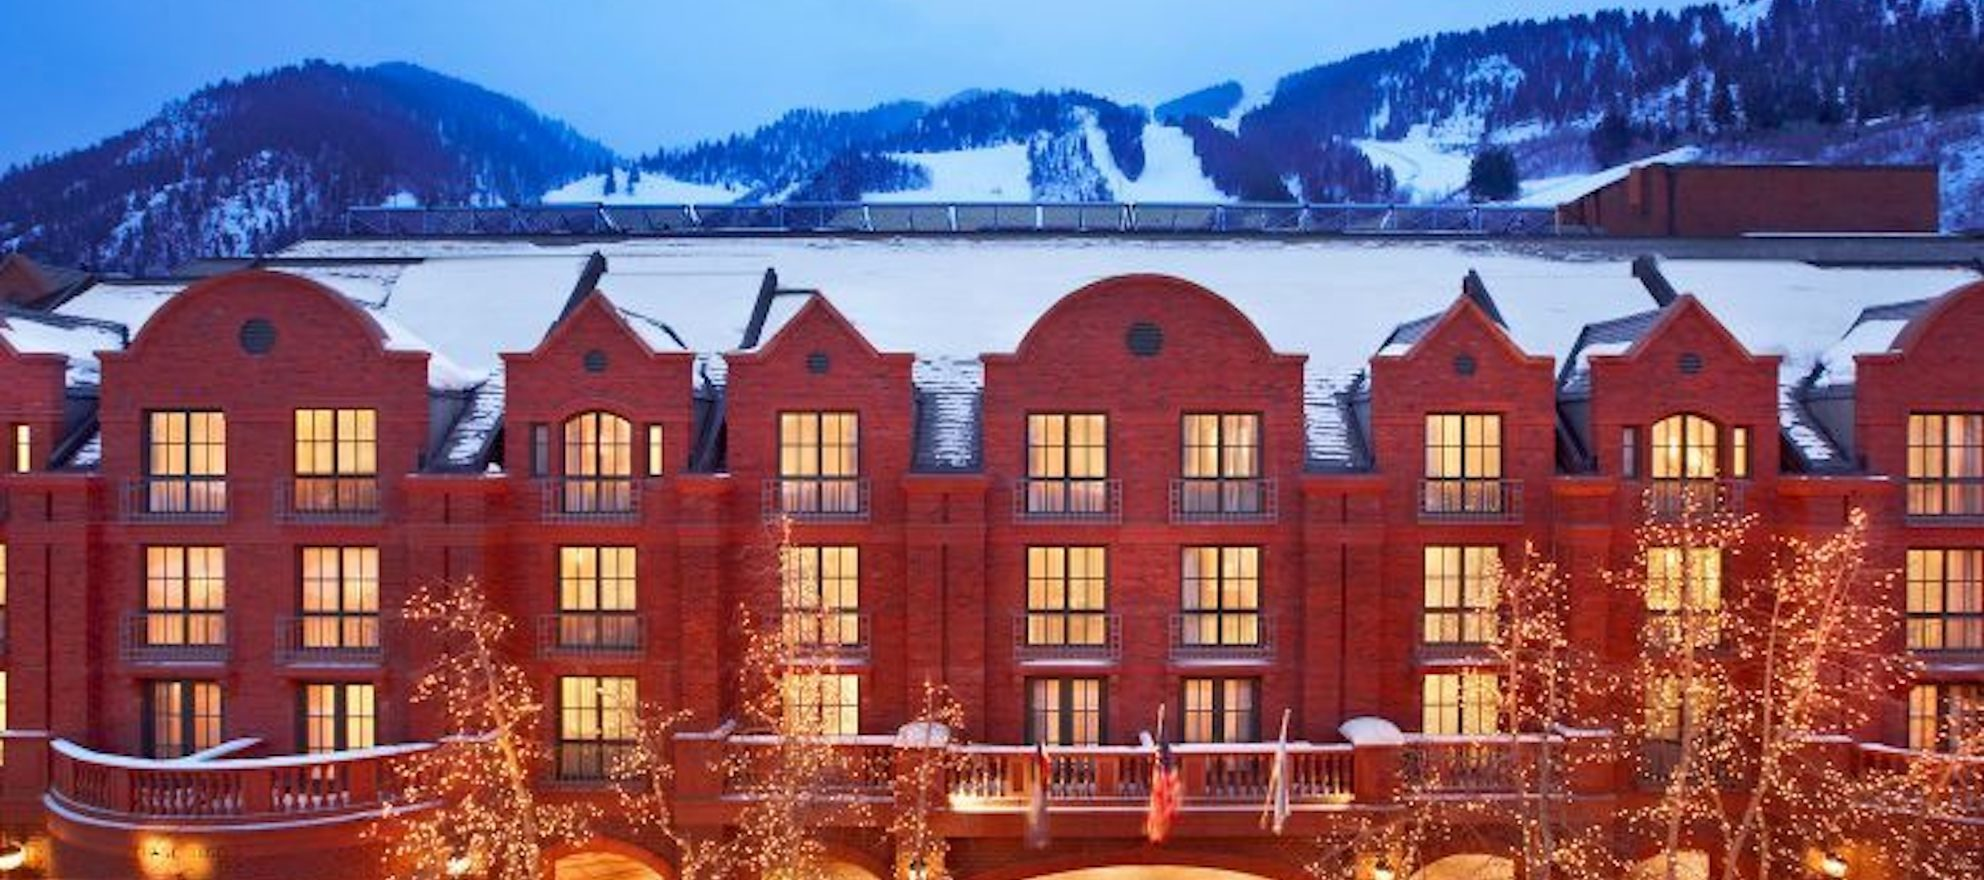 Luxury Aspen resort divides into shares, sells $18M on blockchain